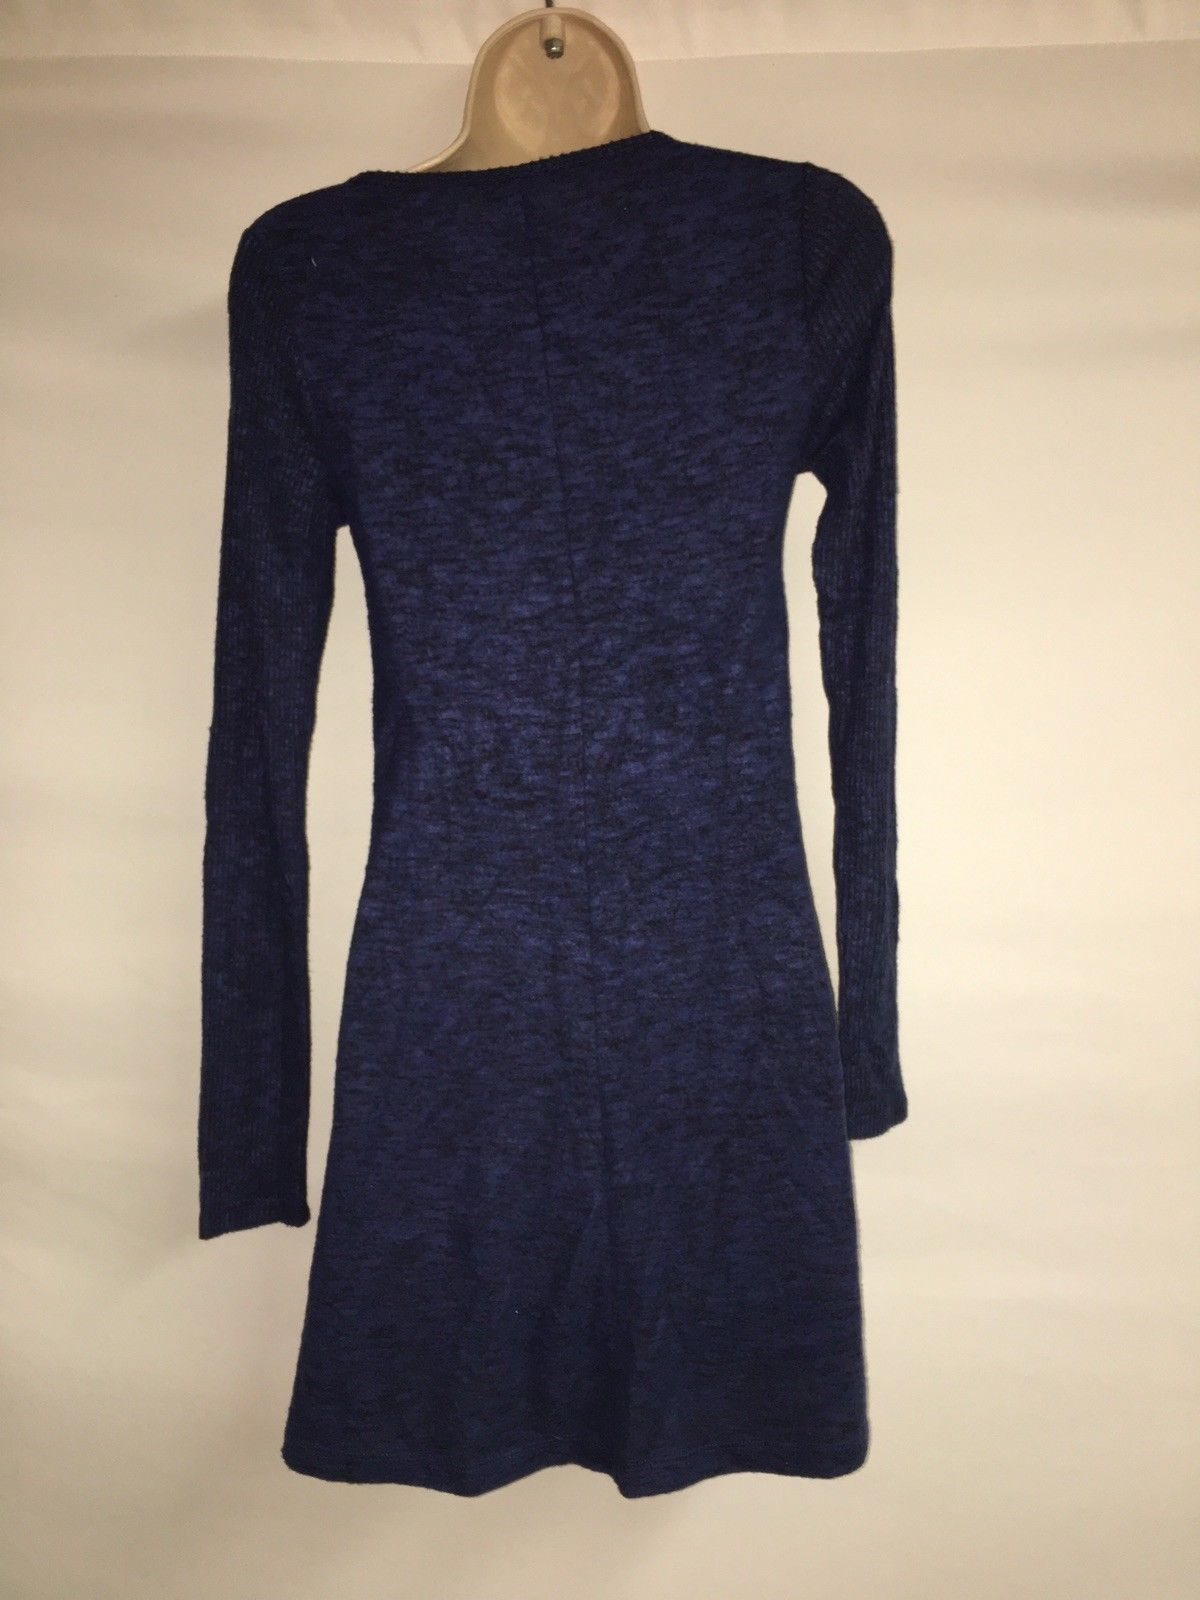 Express Dress Blue Multi Womens XS Long Sleeve NWT $59.9 image 5